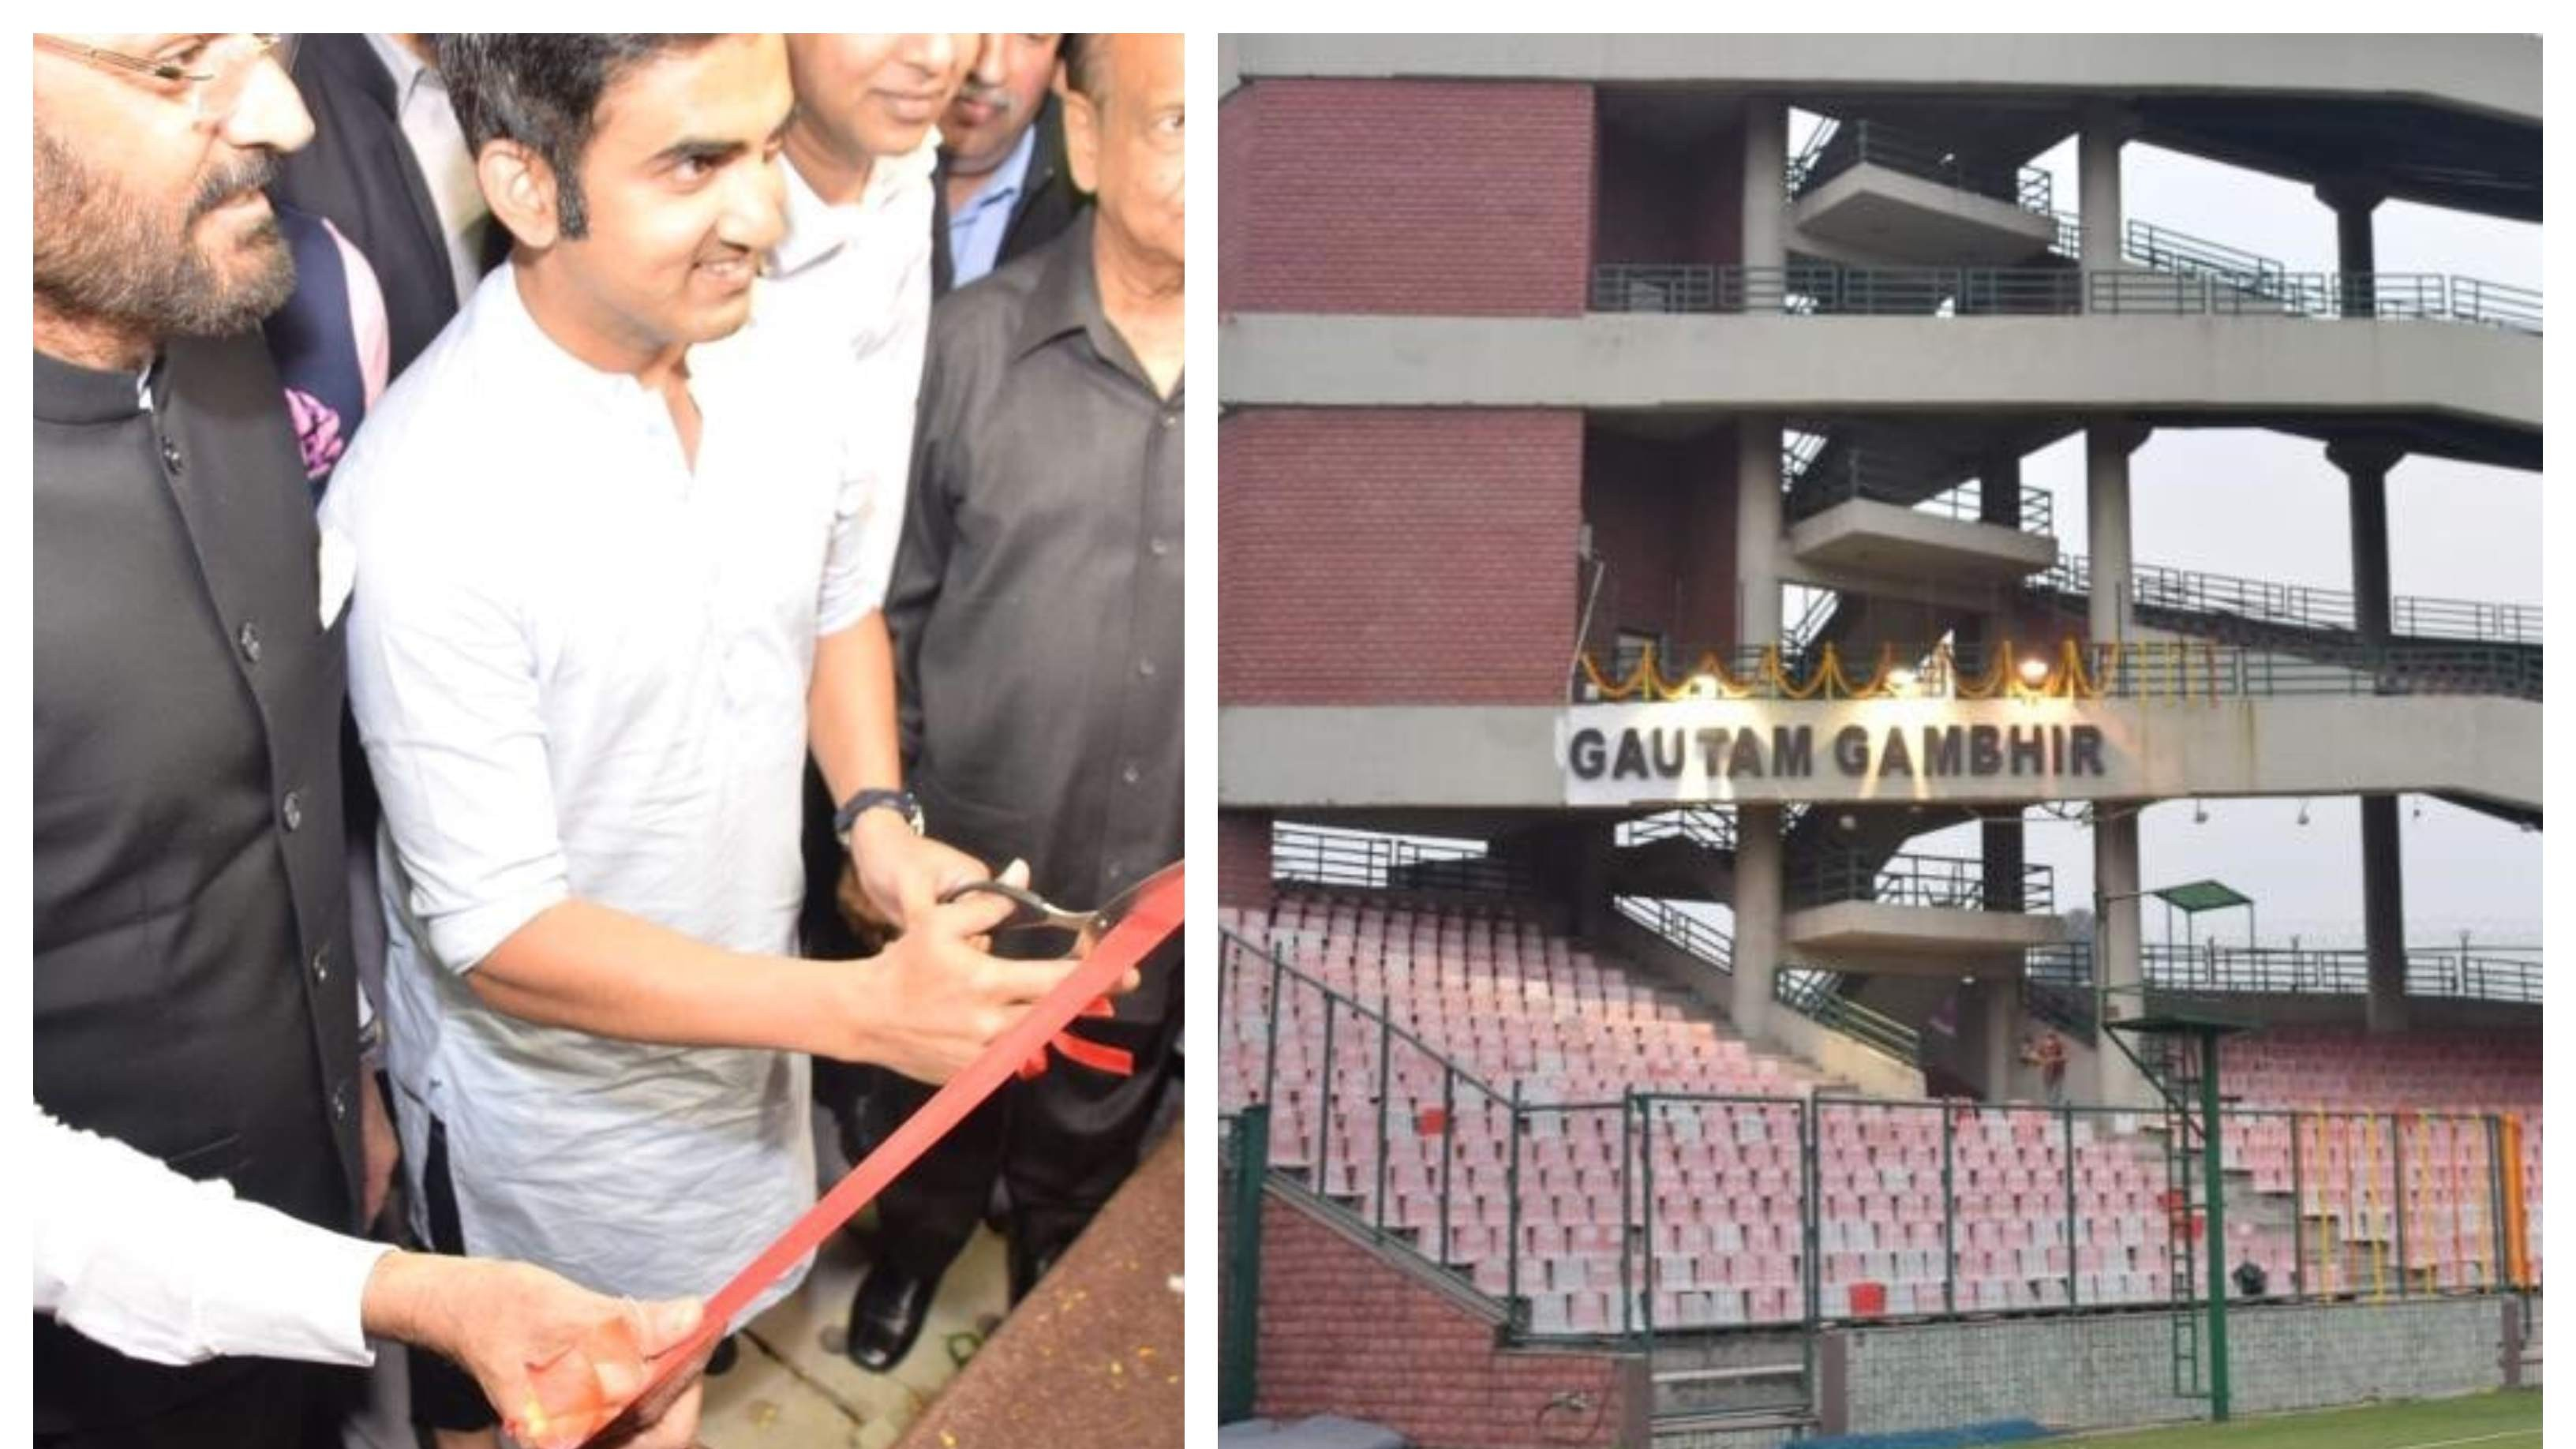 Gautam Gambhir questions DDCA President Rajat Sharma for delay in unveiling stand named after him